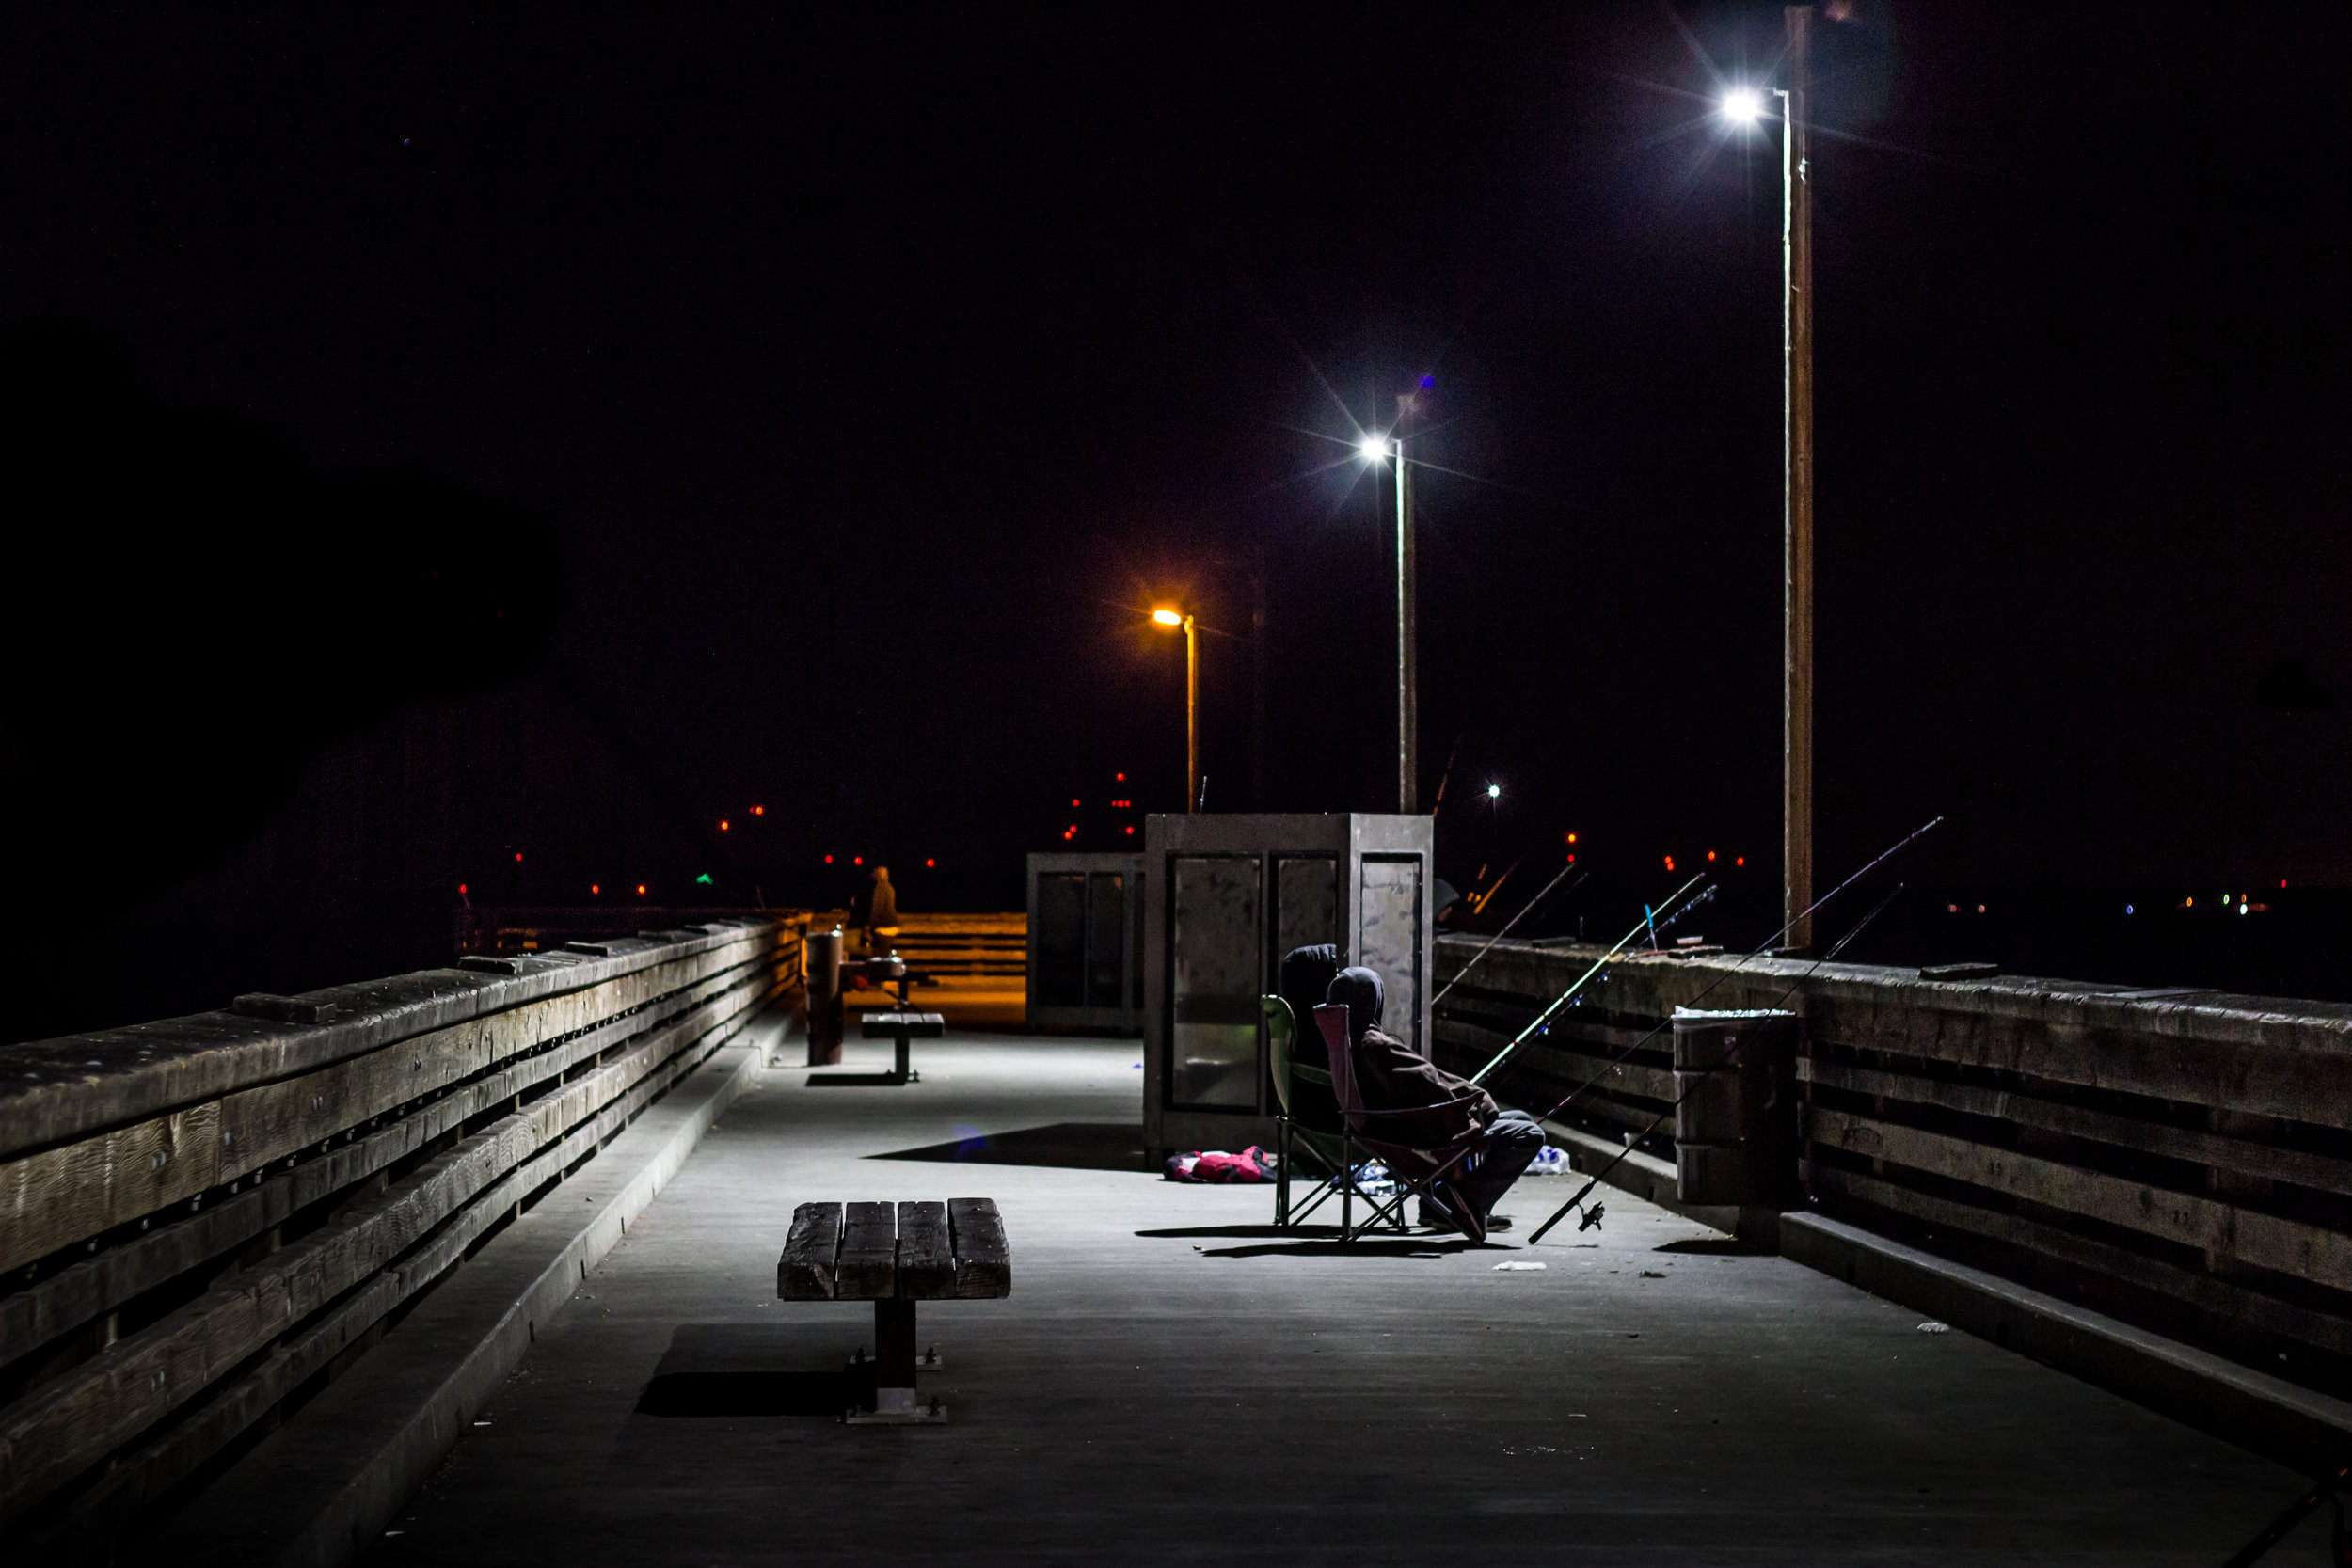 At the Antioch/Oakley Regional Shoreline fishing pier facing North. Image taken on April 9th, 2015 at 10:27pm by Michael Pohl.